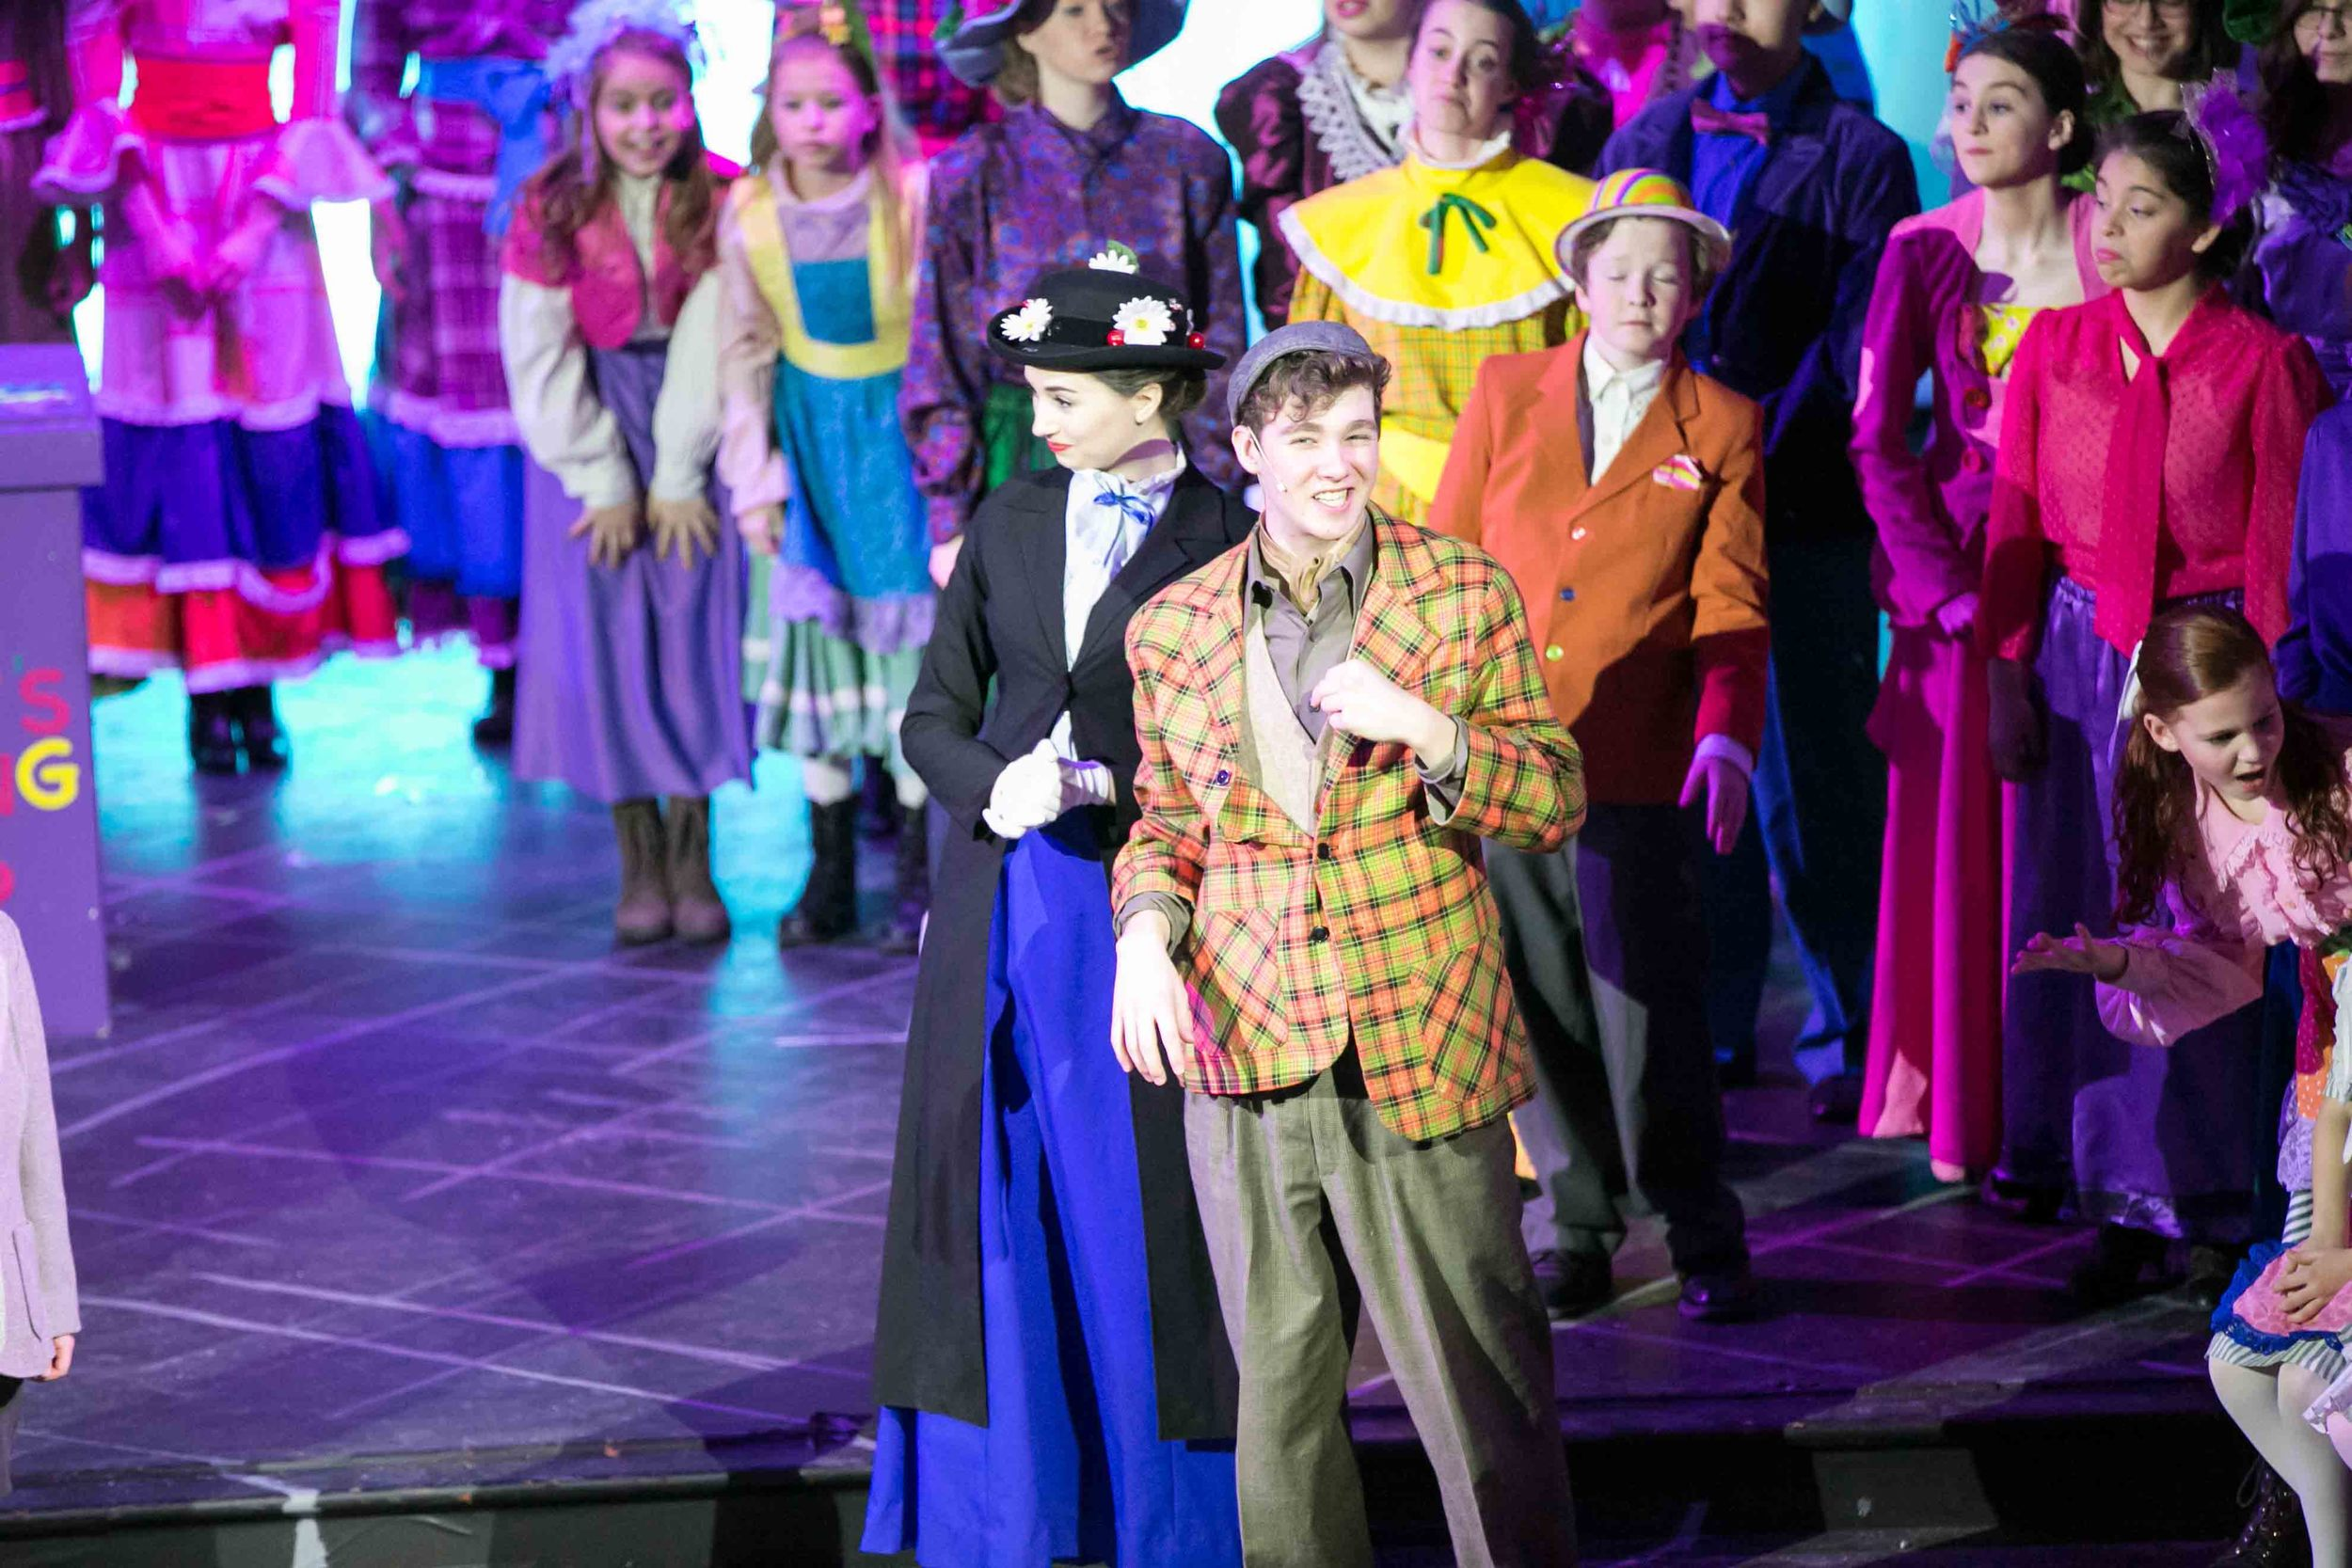 2-7-16 Mary Poppins Prim Cast 0235.jpg